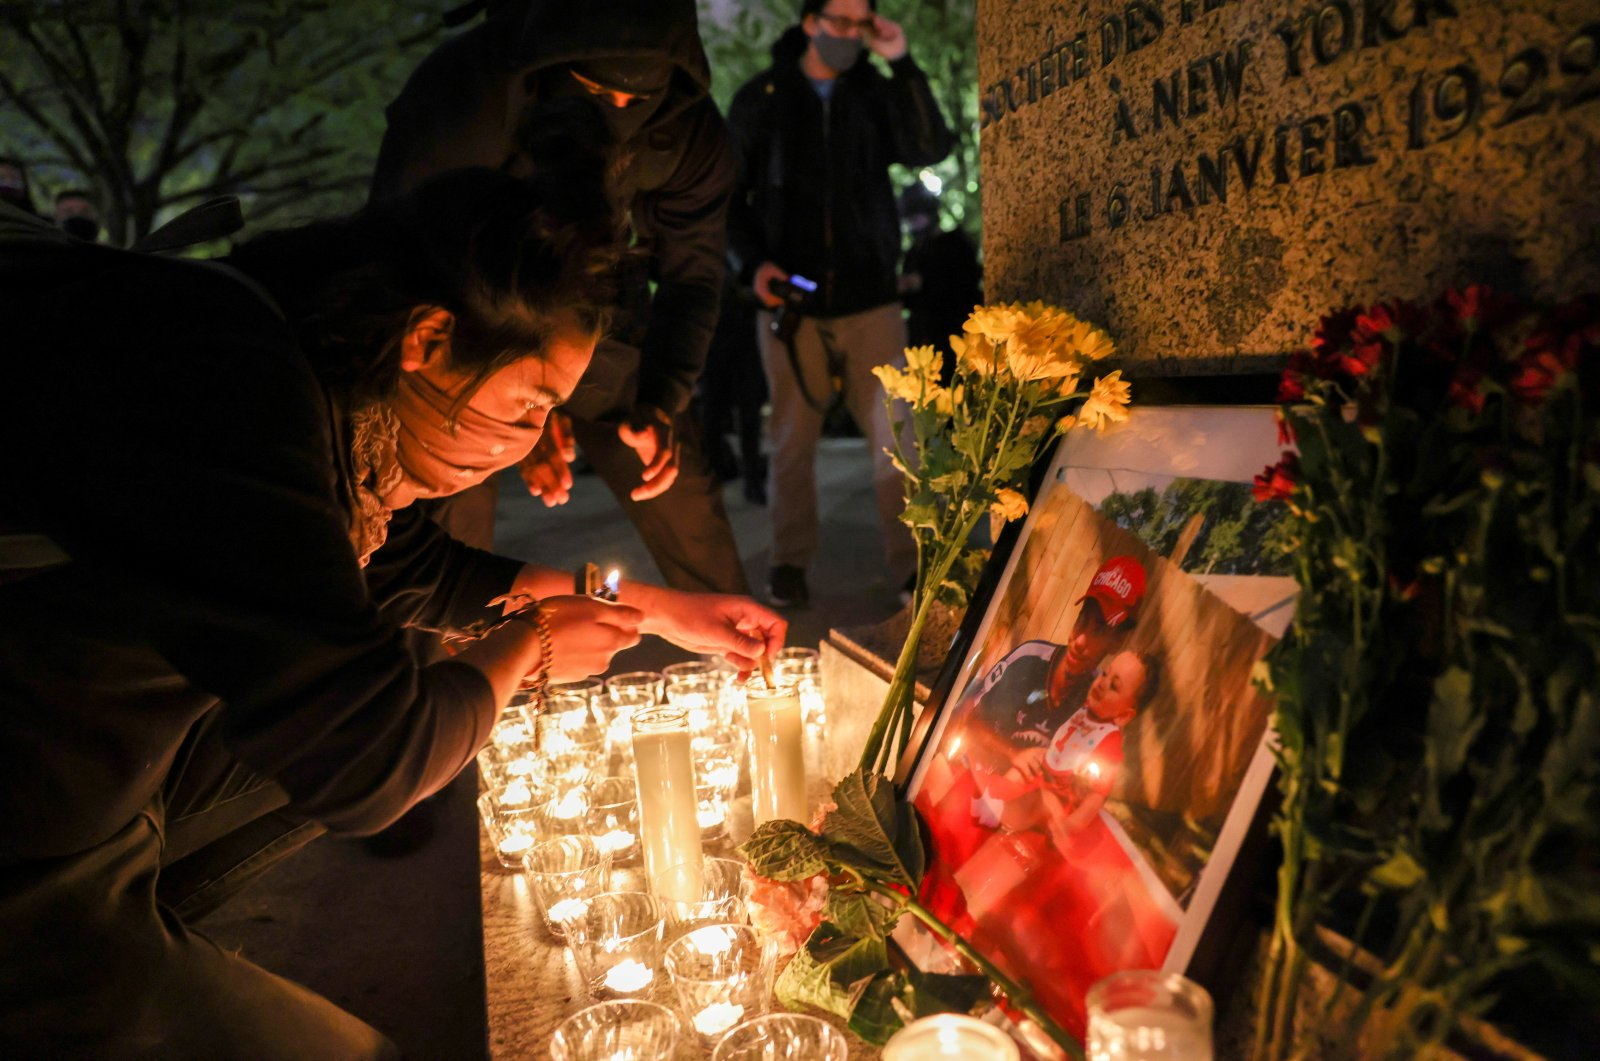 A person lights a candle during a vigil following the fatal police shooting of 20-year-old Black man Daunte Wright in Minnesota, Washington, U.S., April 12, 2021. (REUTERS/Evelyn Hockstein/File Photo)